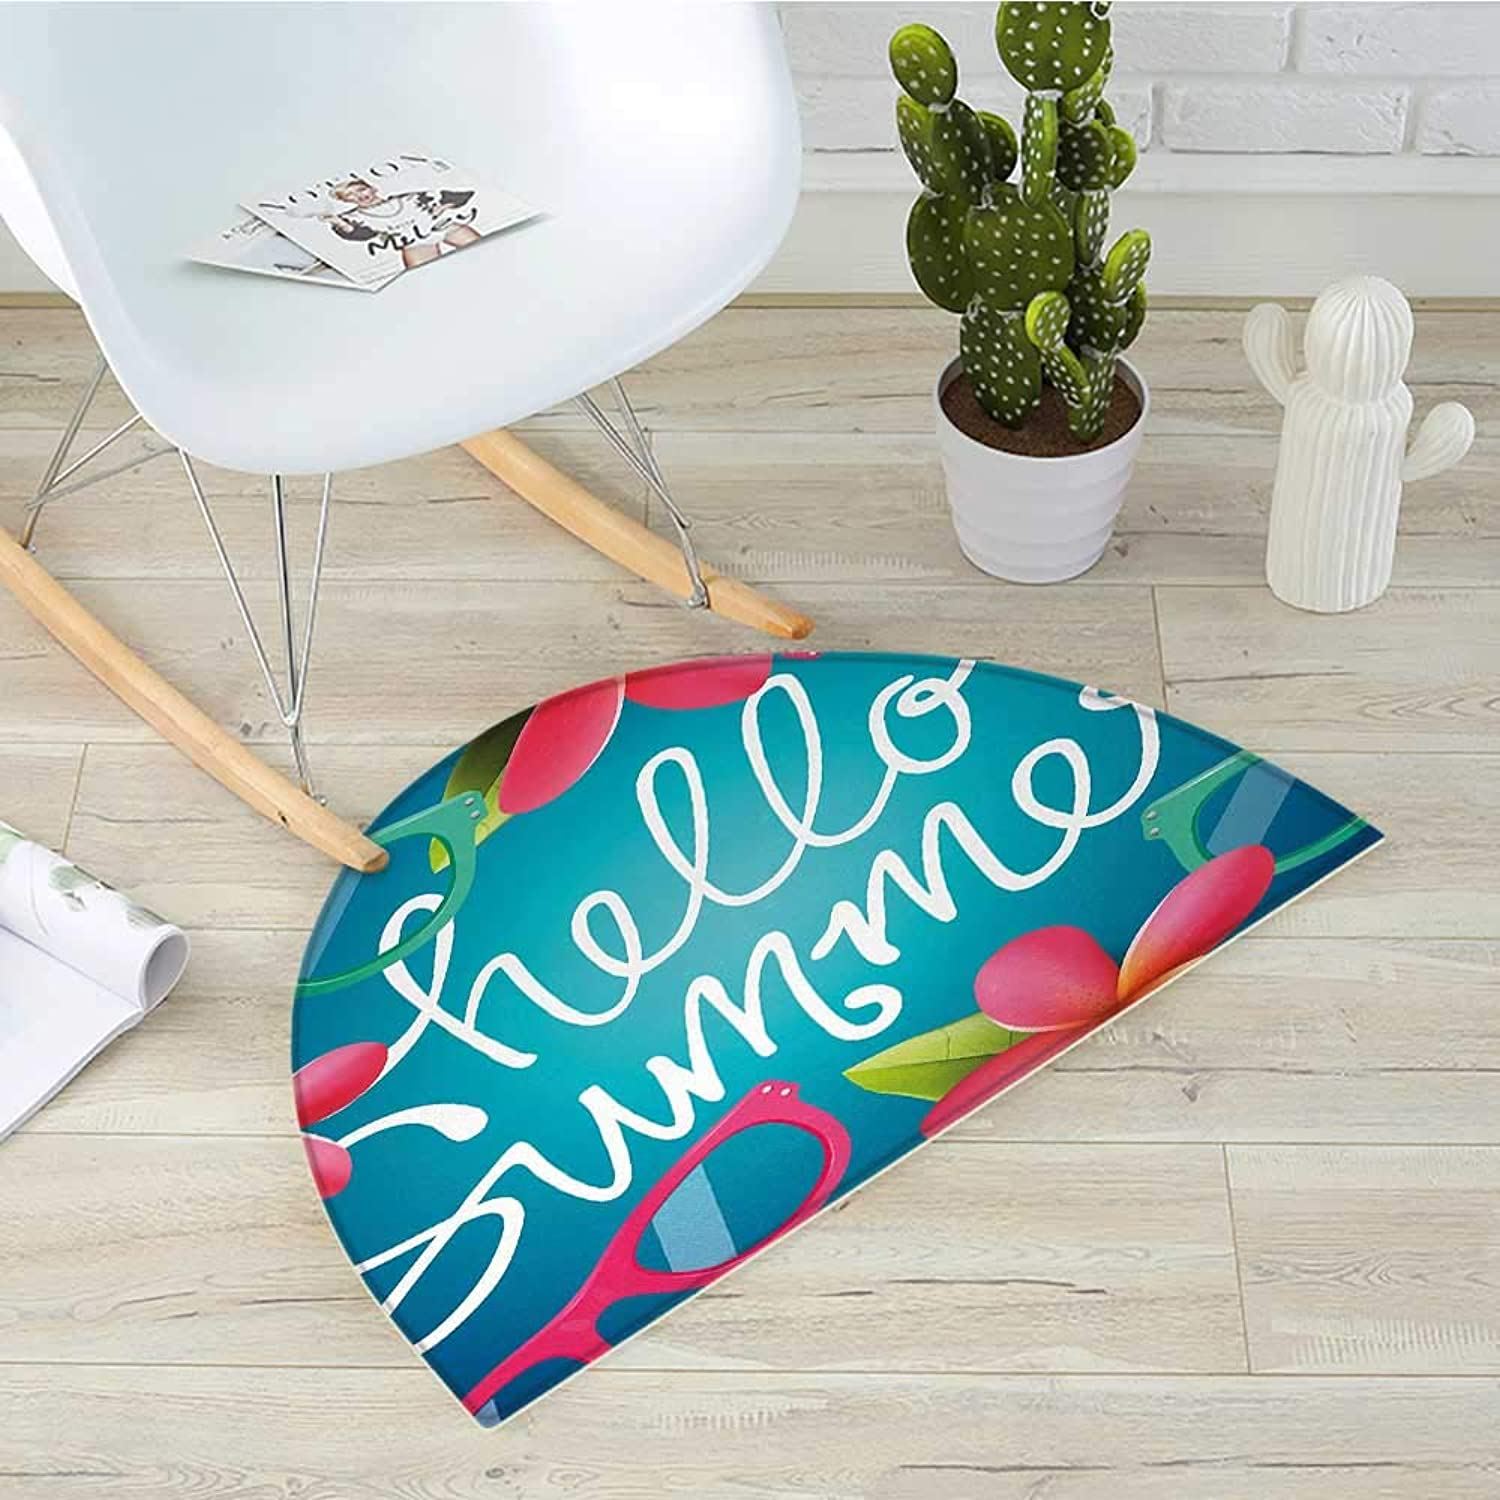 Hello Summer Semicircle Doormat Funky Illustration of Summer Images colorful Sunglasses and Frangipani Buds Halfmoon doormats H 27.5  xD 41.3  Multicolor